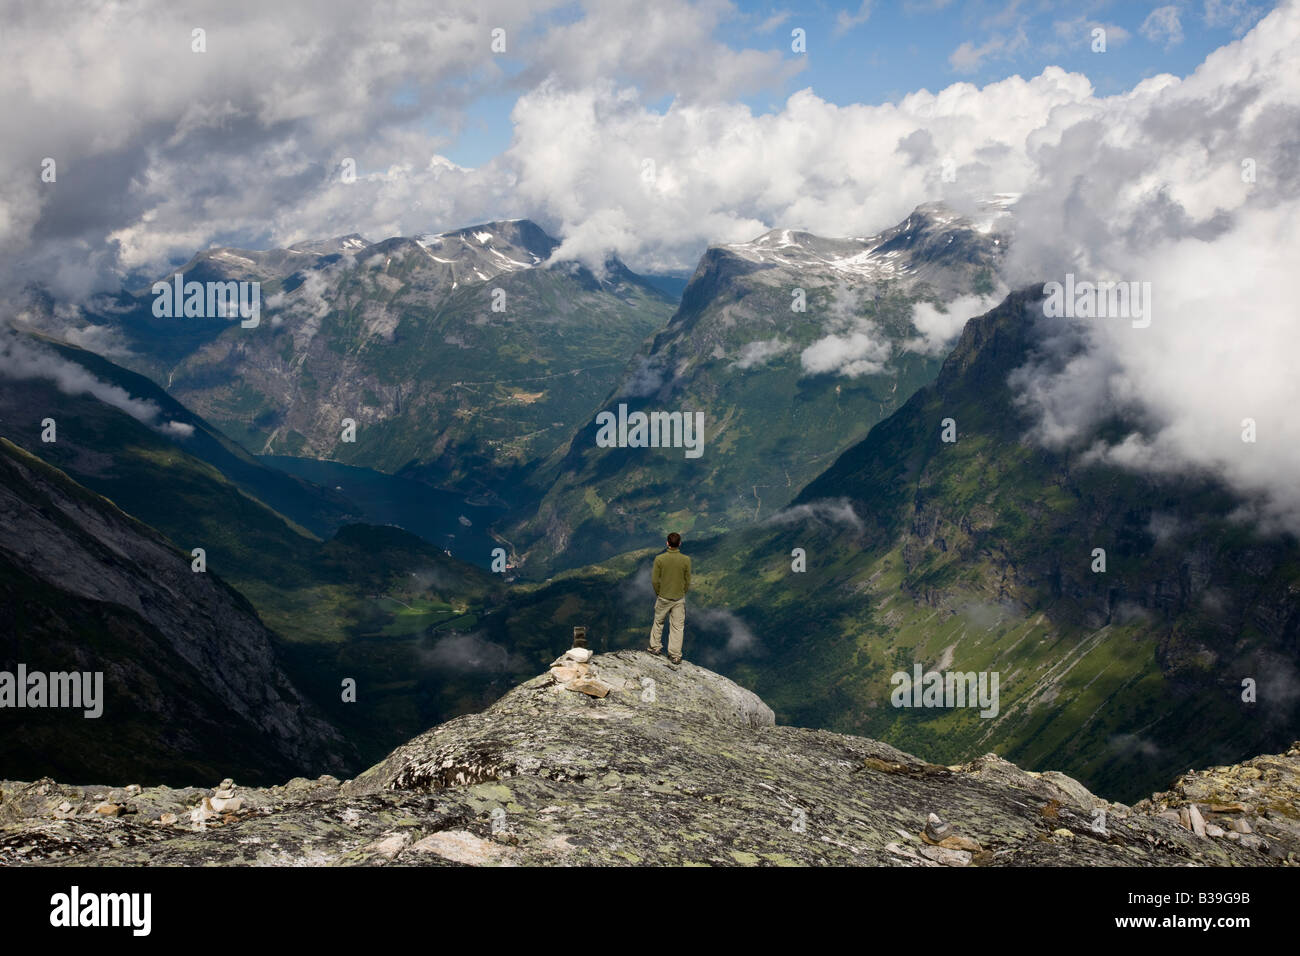 Aerial perspective 1 young adult man 20's looking out at  Geiranger Fjord, Norway from Dalsnibba mountain plateau, dramatic blue sky, fluffy clouds Stock Photo